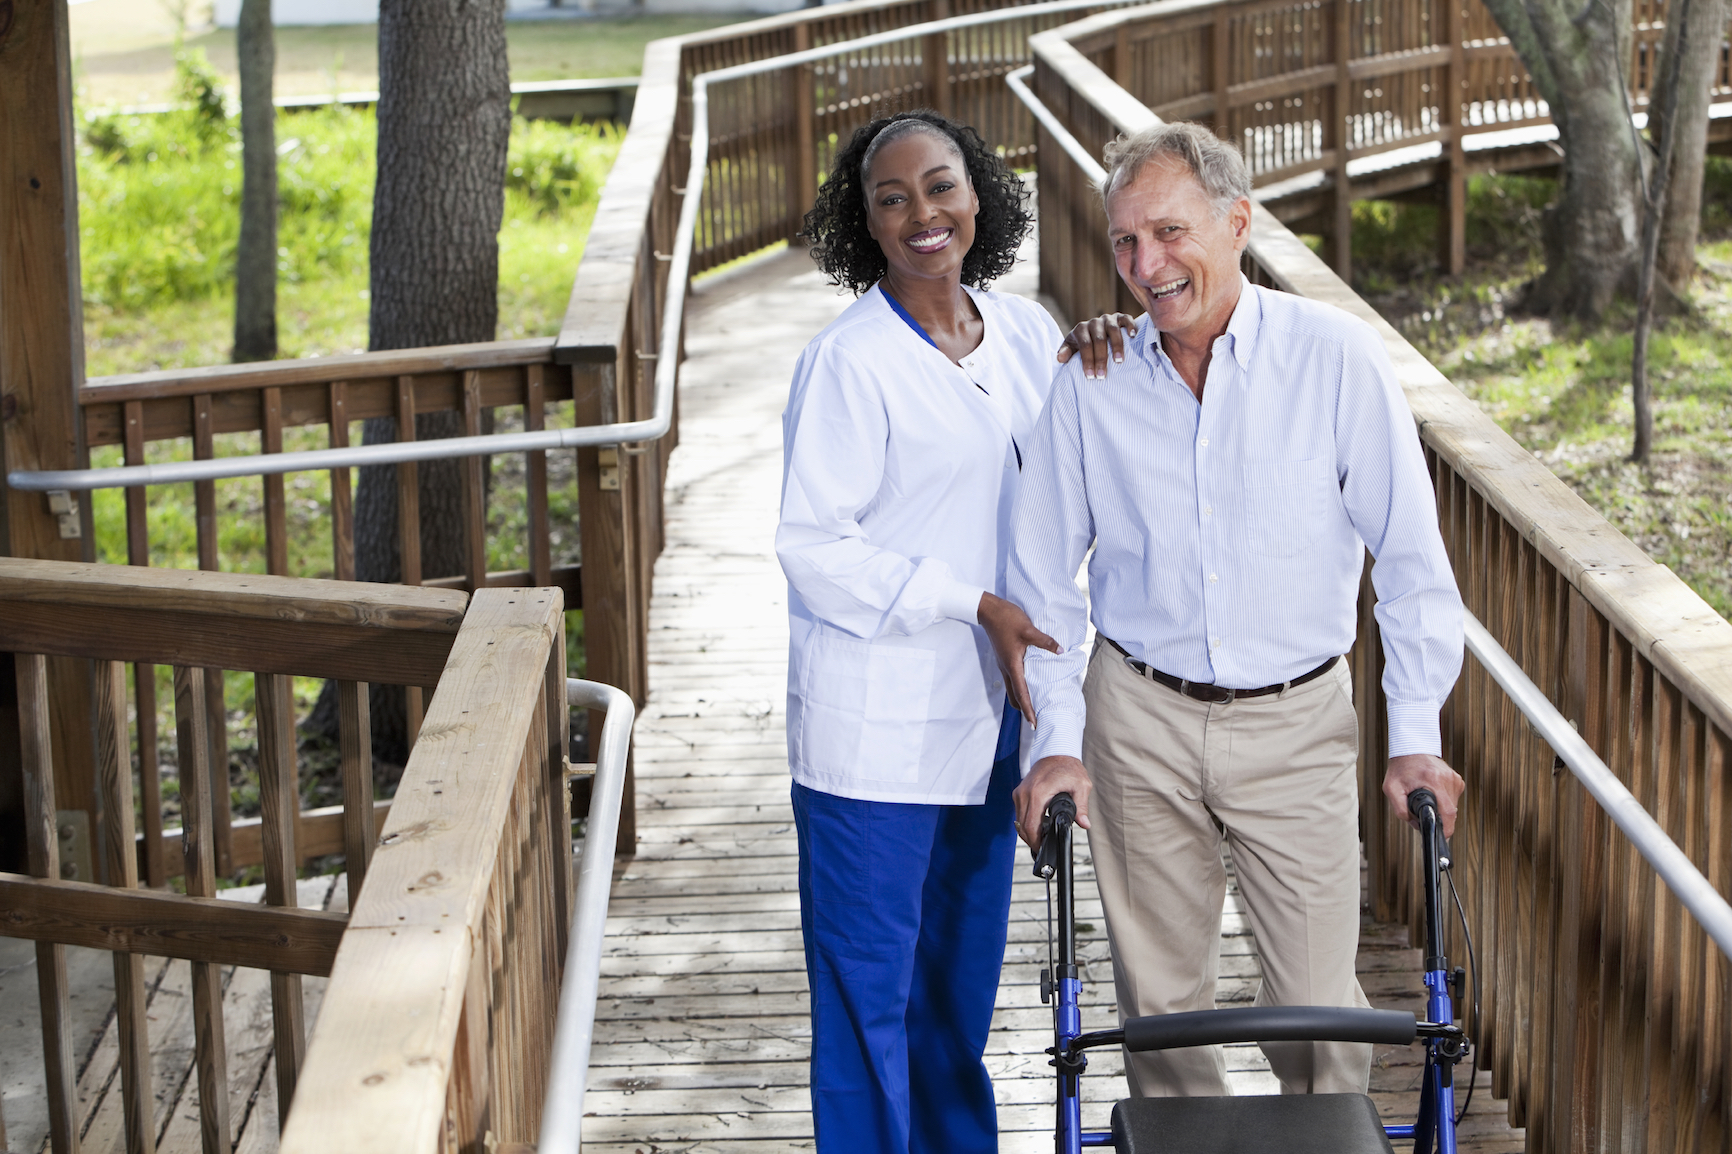 Nurse with senior man on wooden walkway